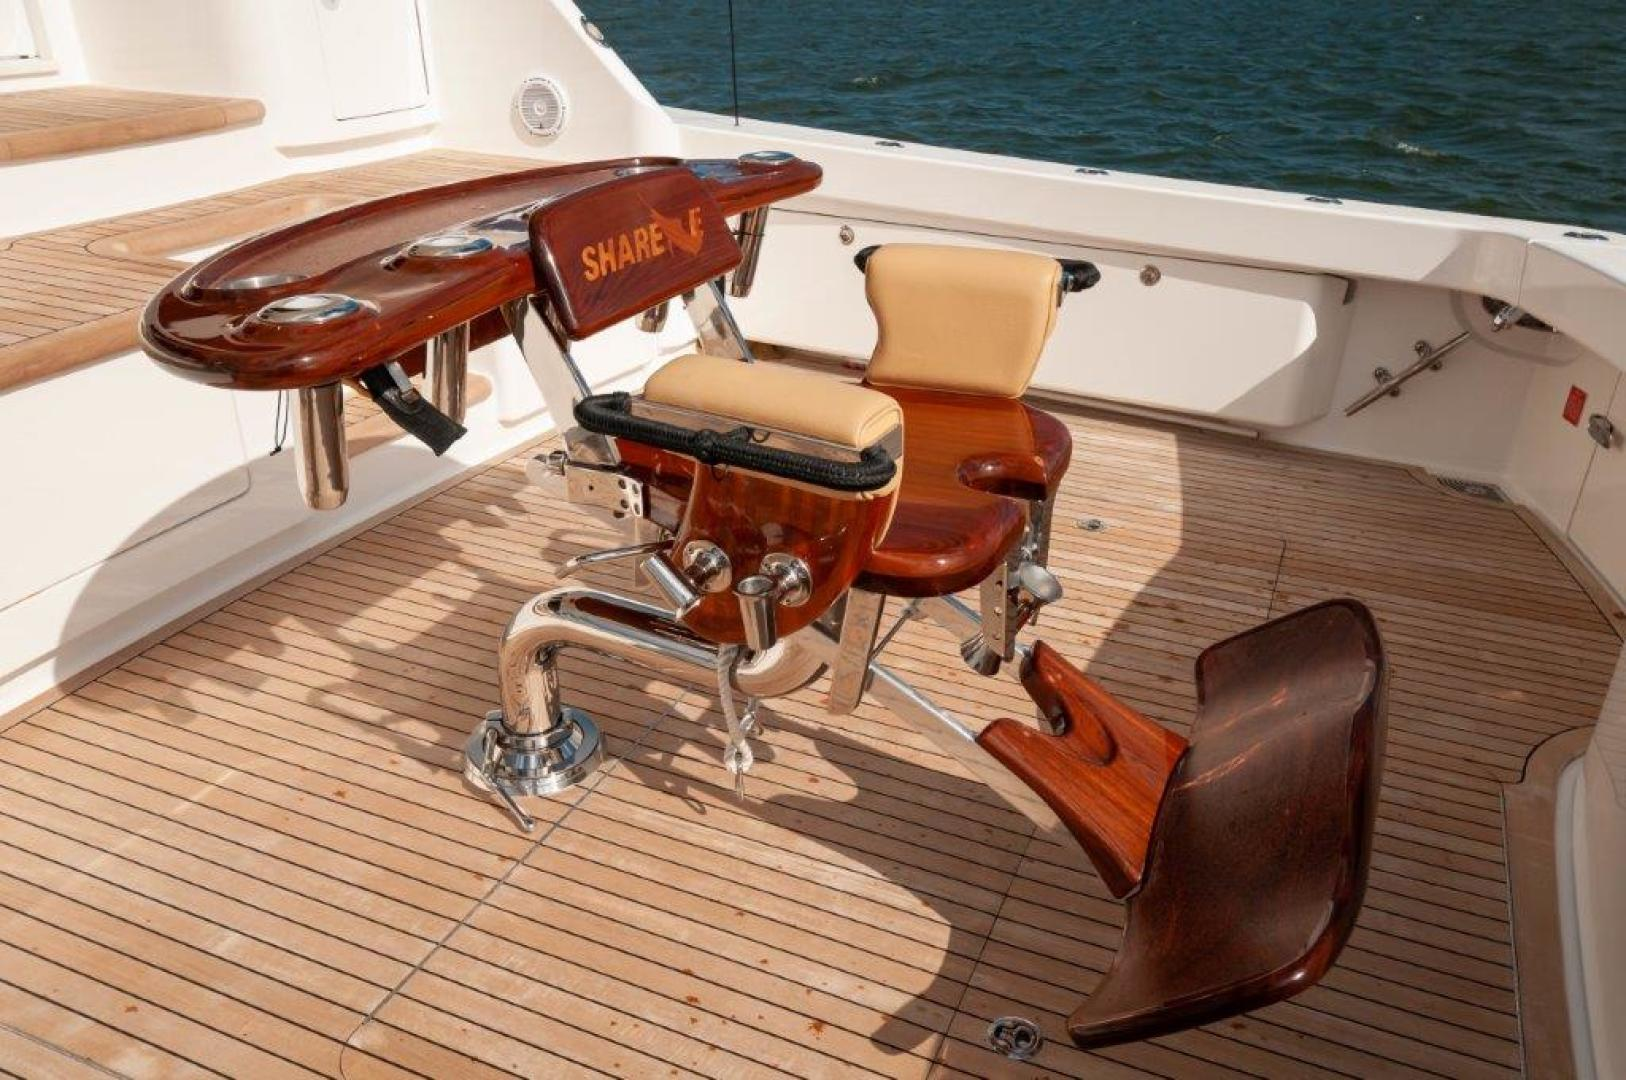 Viking-72 Enclosed Bridge 2017-SHARE E Orange Beach-Alabama-United States-2017 72 EB Viking SHARE-E Cockpit-1233218 | Thumbnail